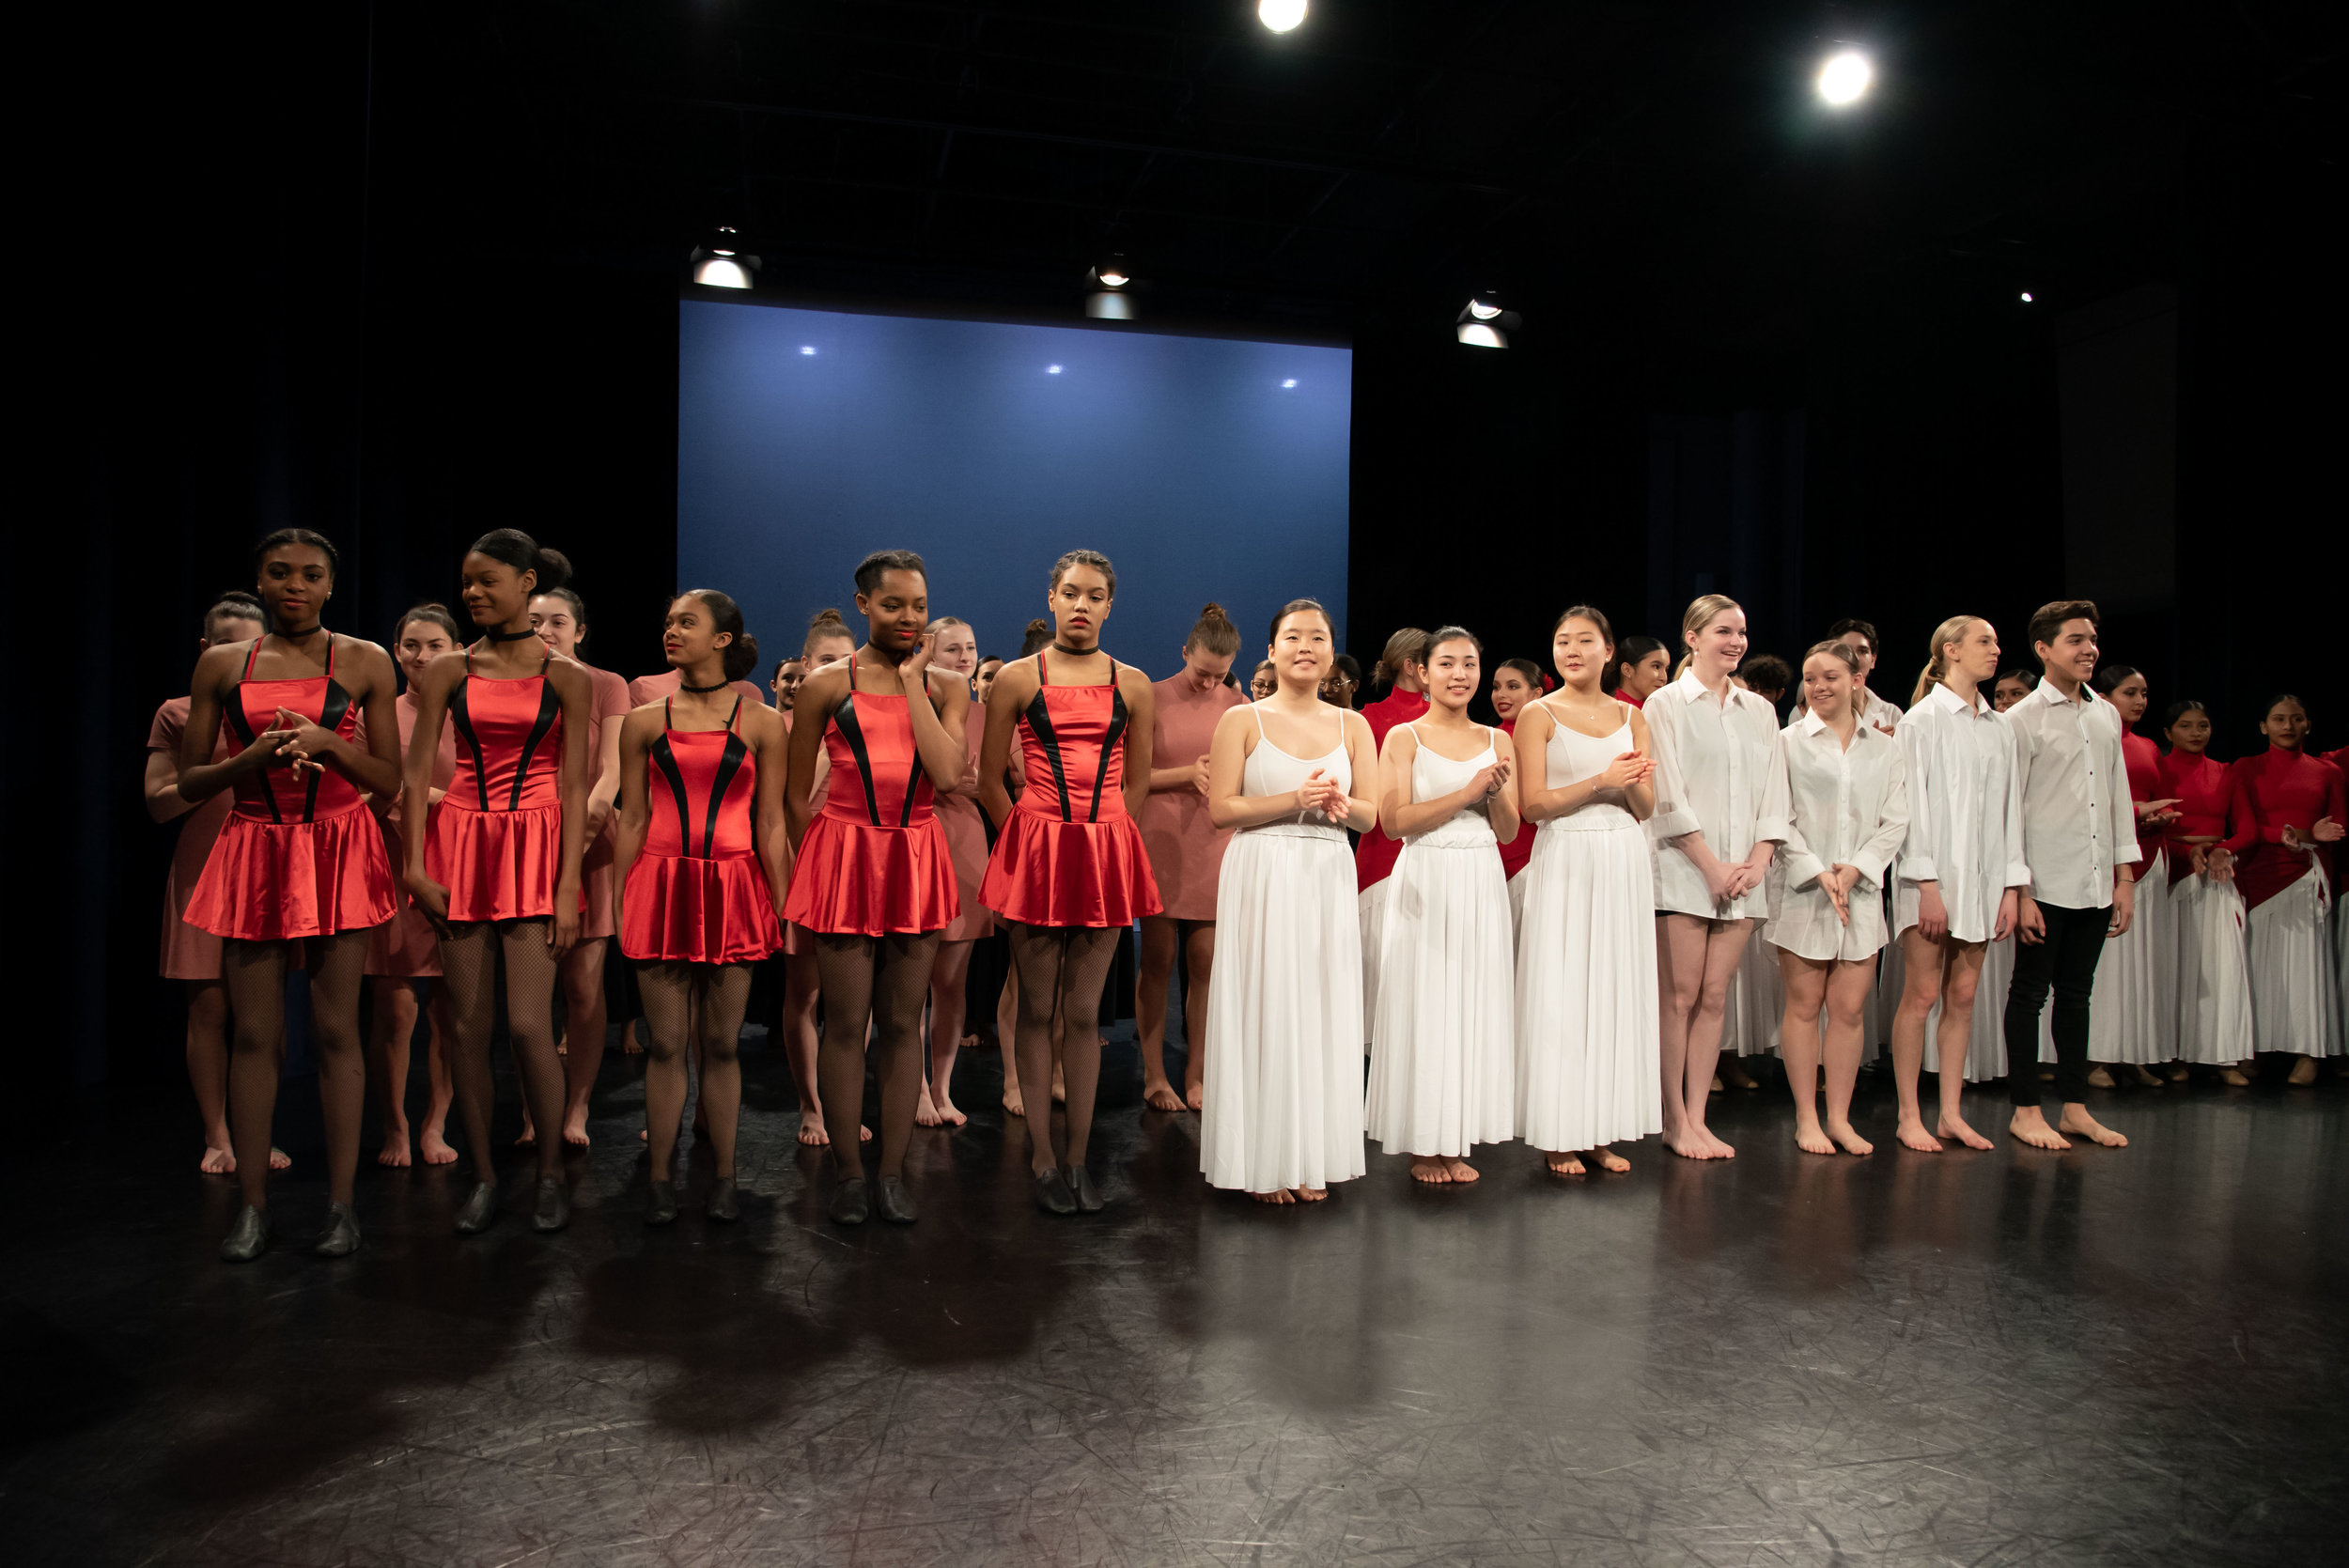 Members of the National Honor Society for Dance Arts